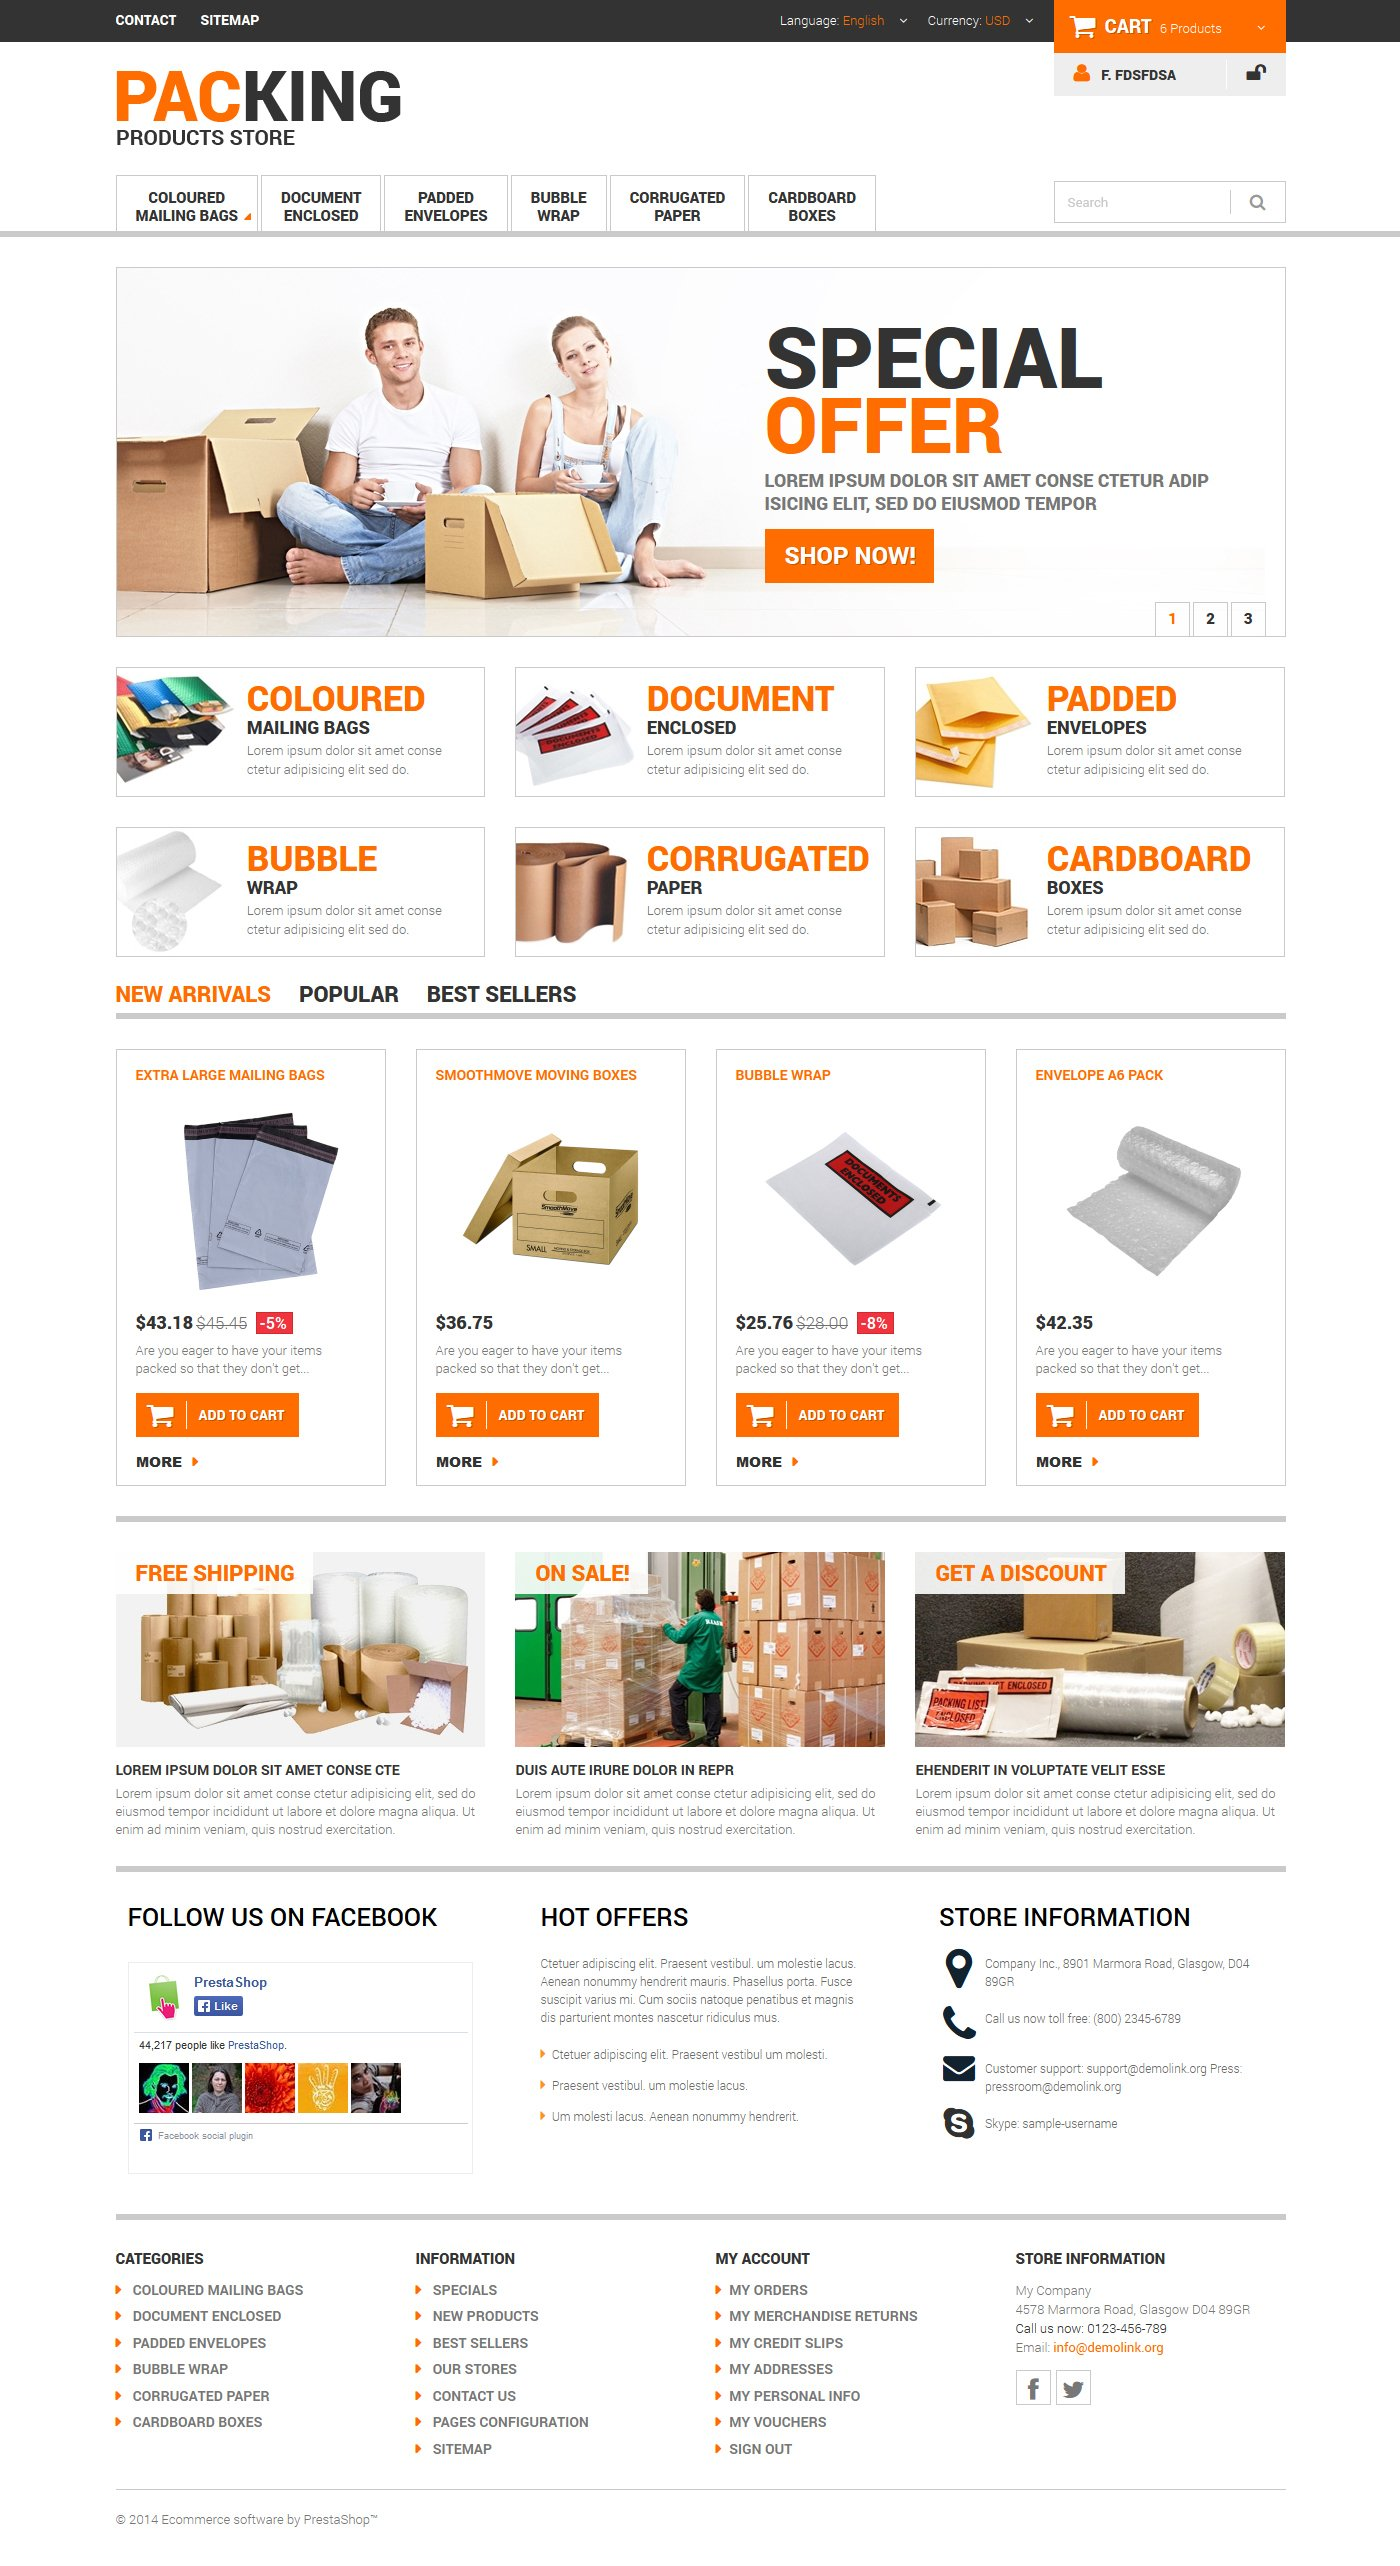 Excellent Packing Services PrestaShop Theme